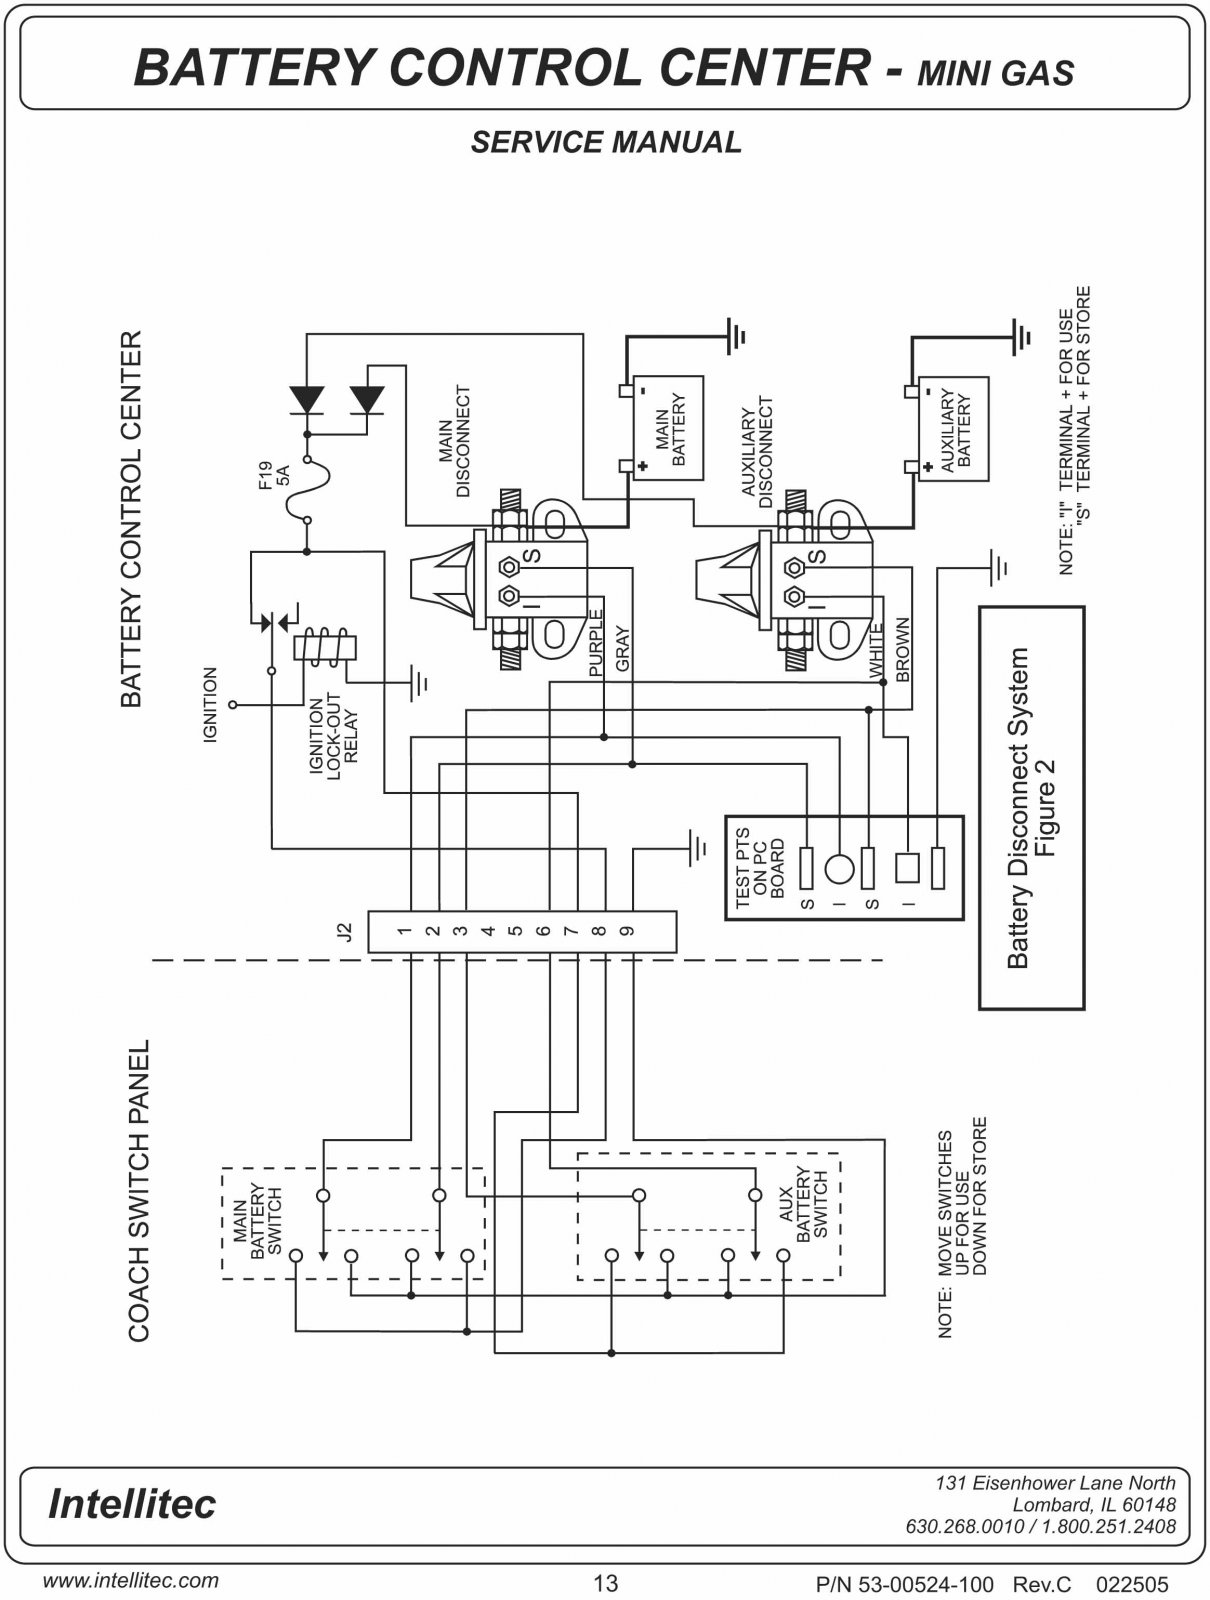 EW_5349] Switch Wiring Diagram On Intellitec Battery Disconnect Wiring  Diagram Free DiagramInrebe Trons Mohammedshrine Librar Wiring 101